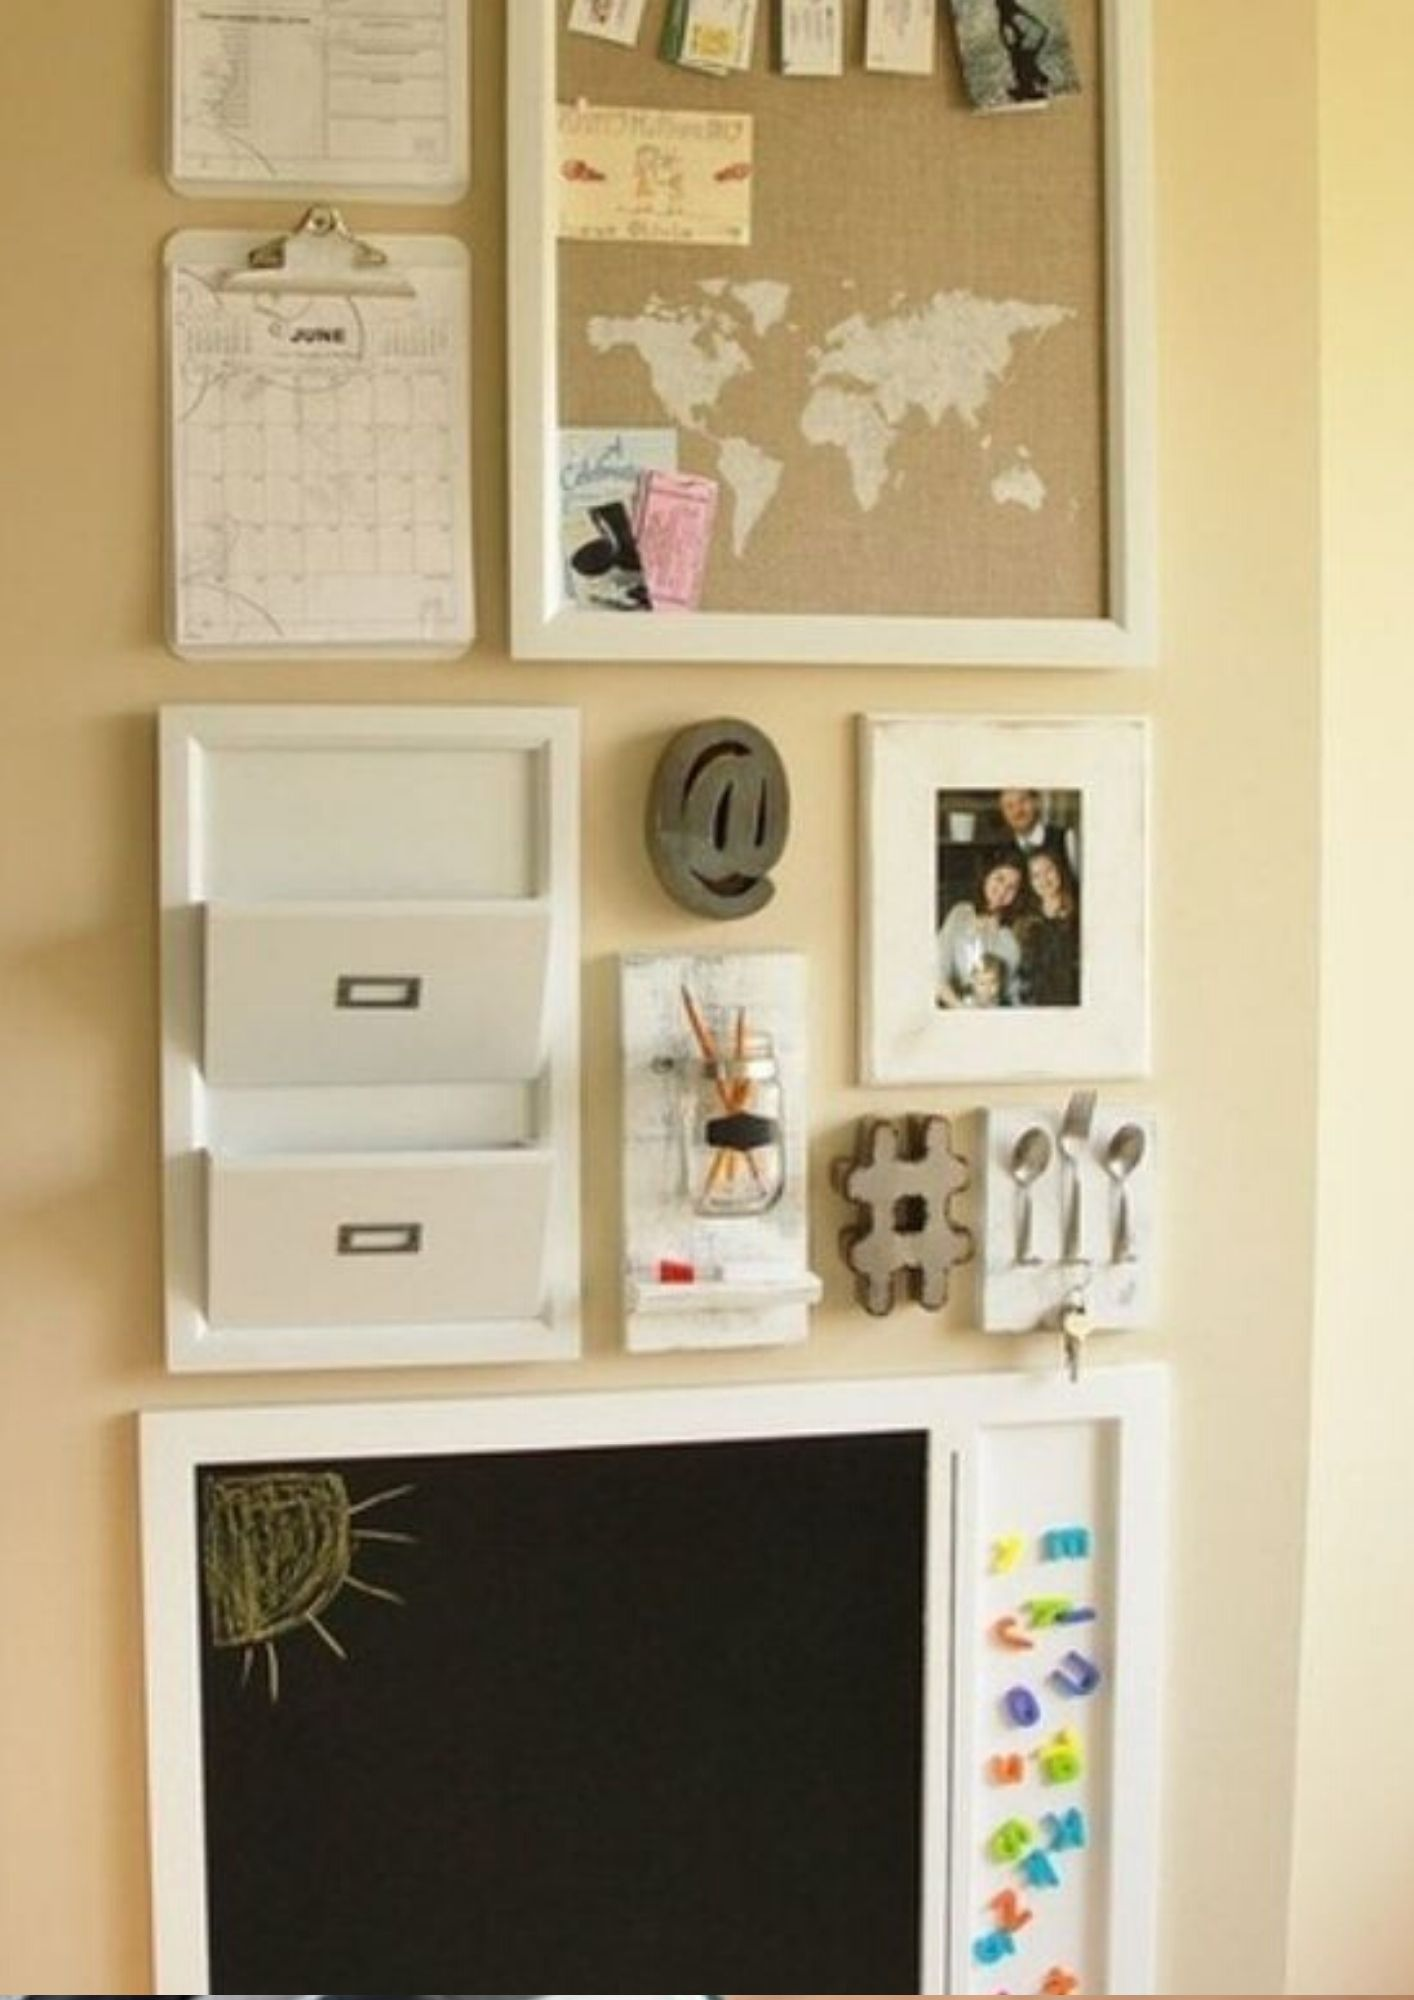 organisation hacks and tips